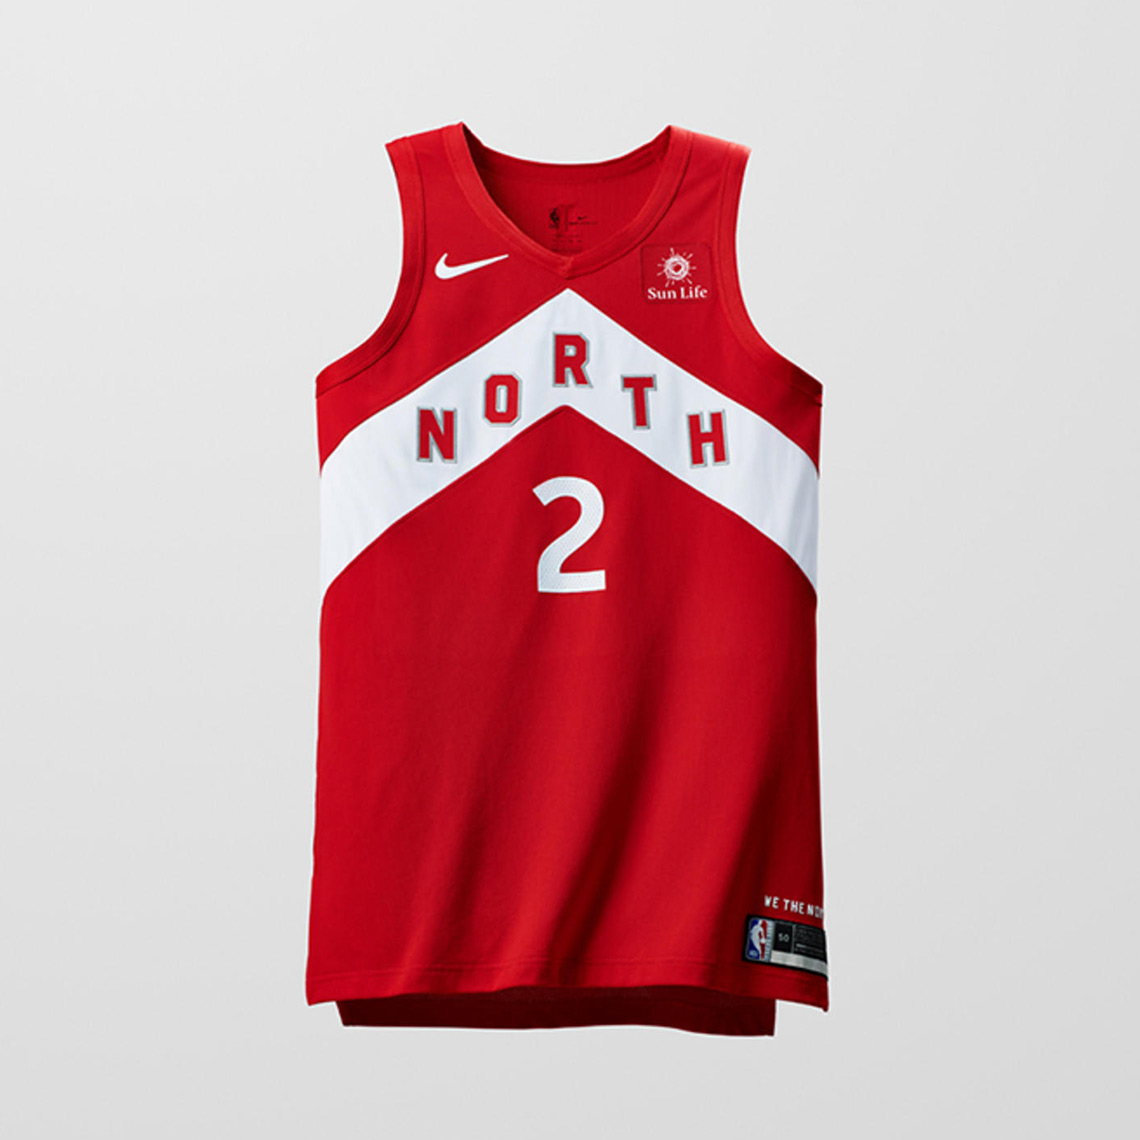 Nike s New Earned Edition NBA Jerseys Are Only For Playoff Teams 4f987ebb0